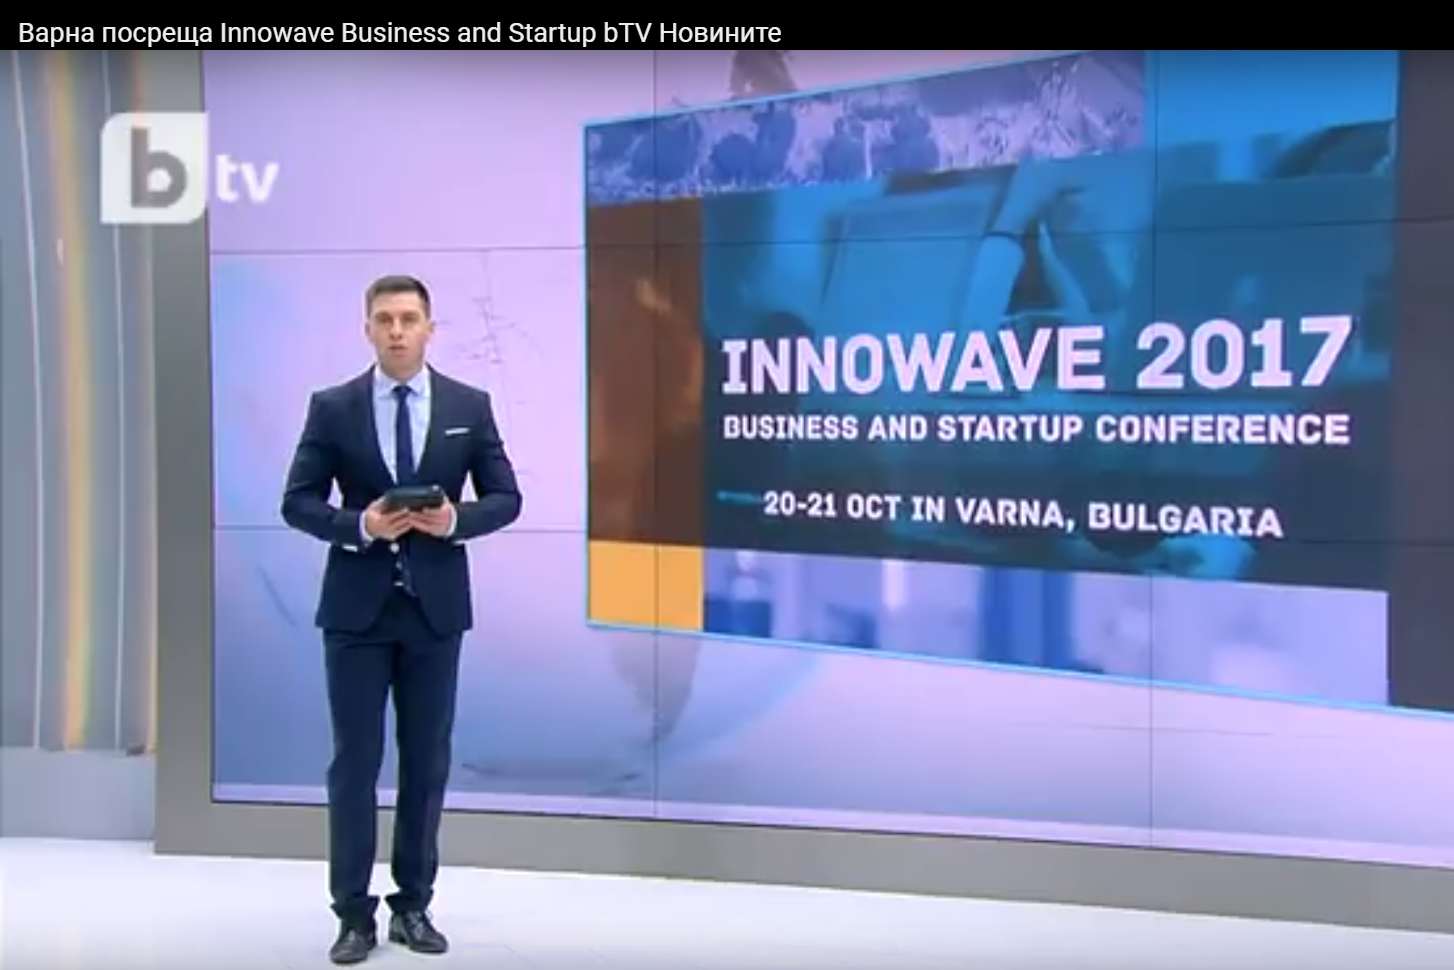 Варна посреща Innowave Business and Startup